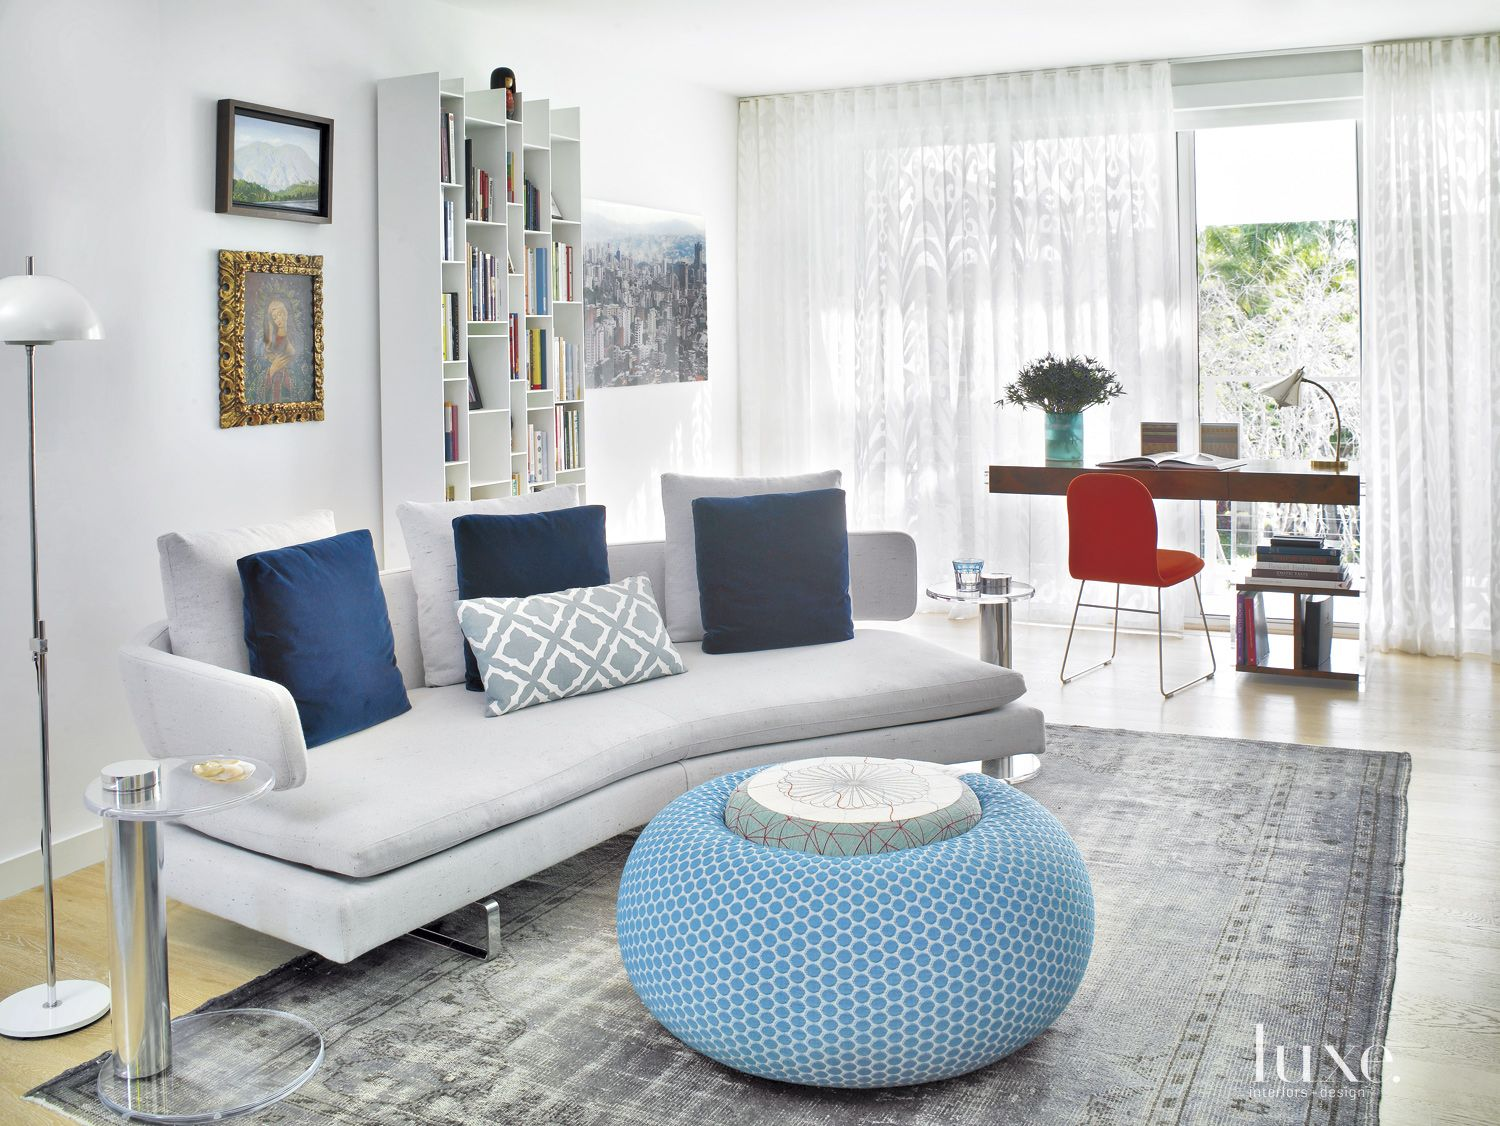 Eclectic White Sitting Area with Colorful Accents